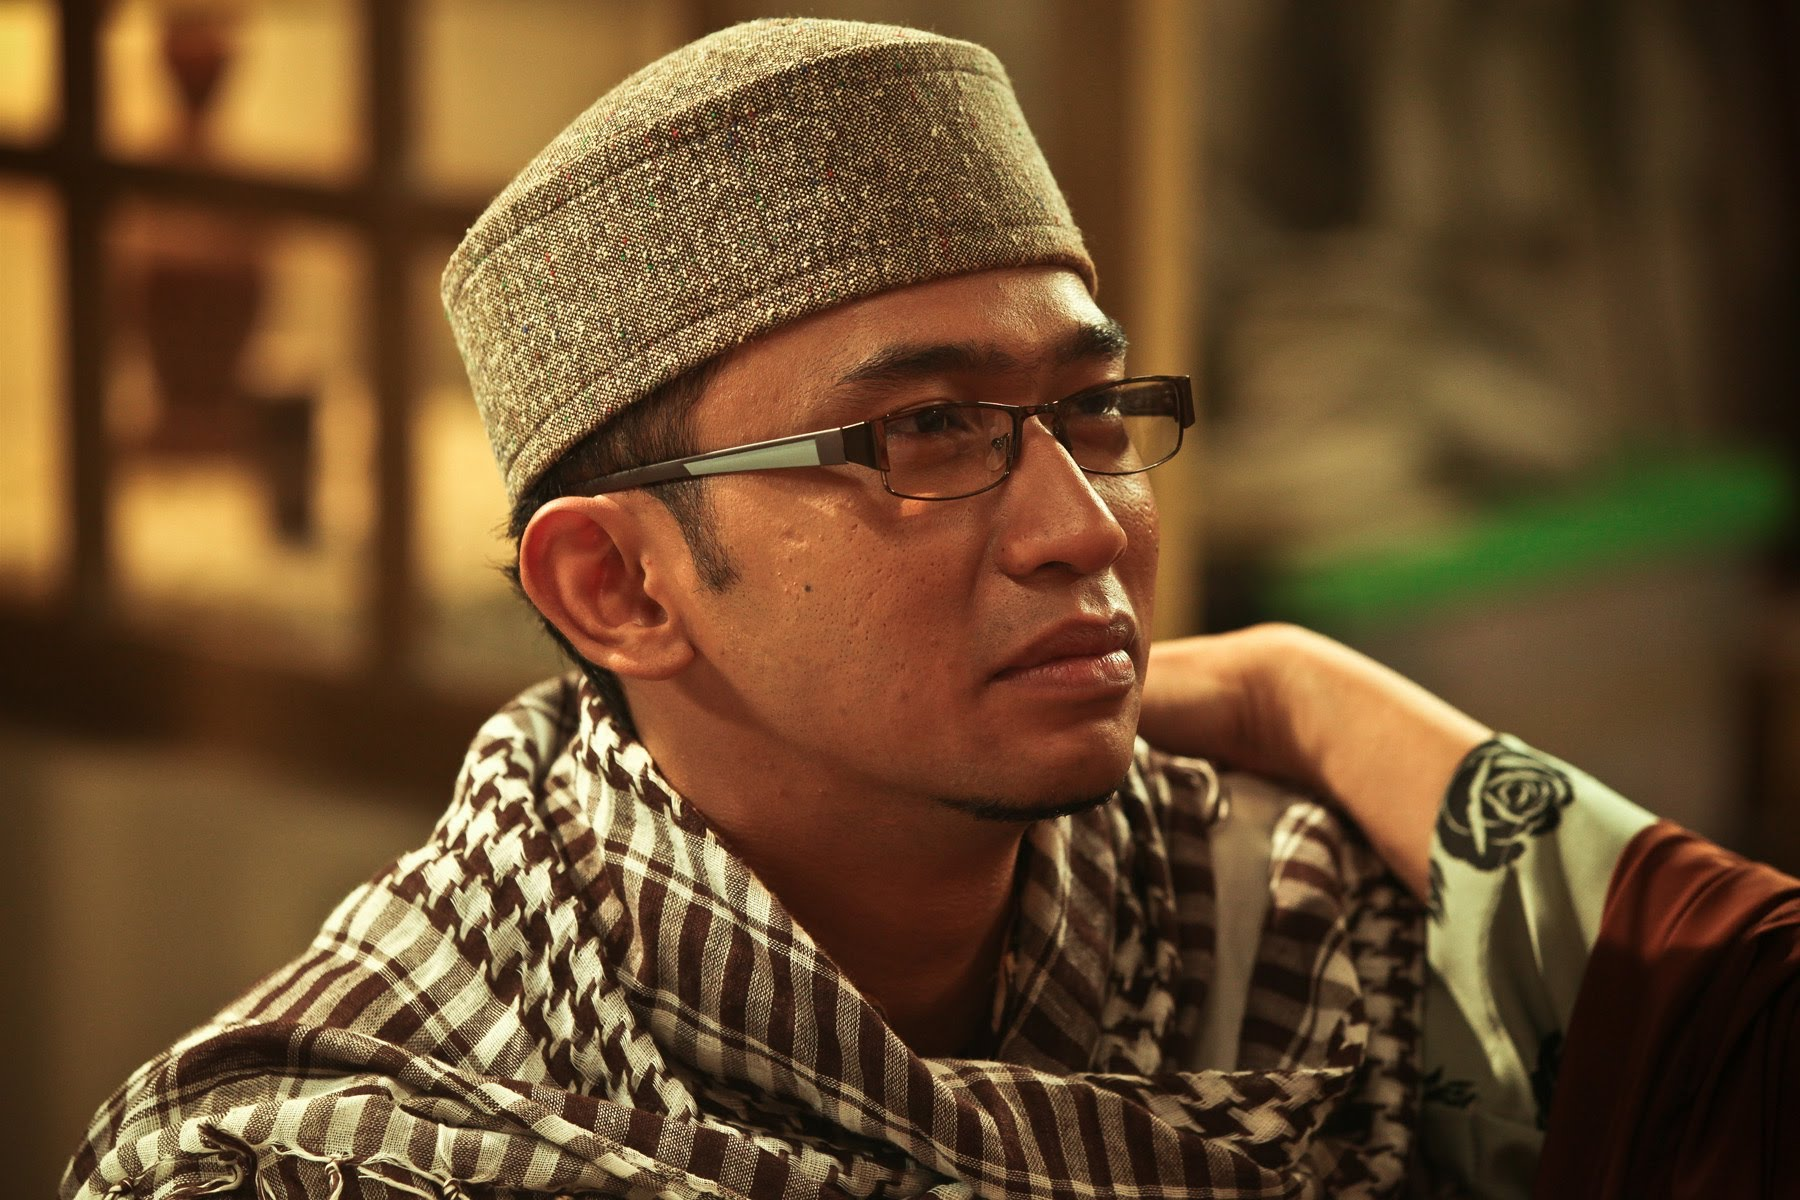 VIDEO: Hijrah Cinta, Film Biografi Ustad Jeffry Al Buchory